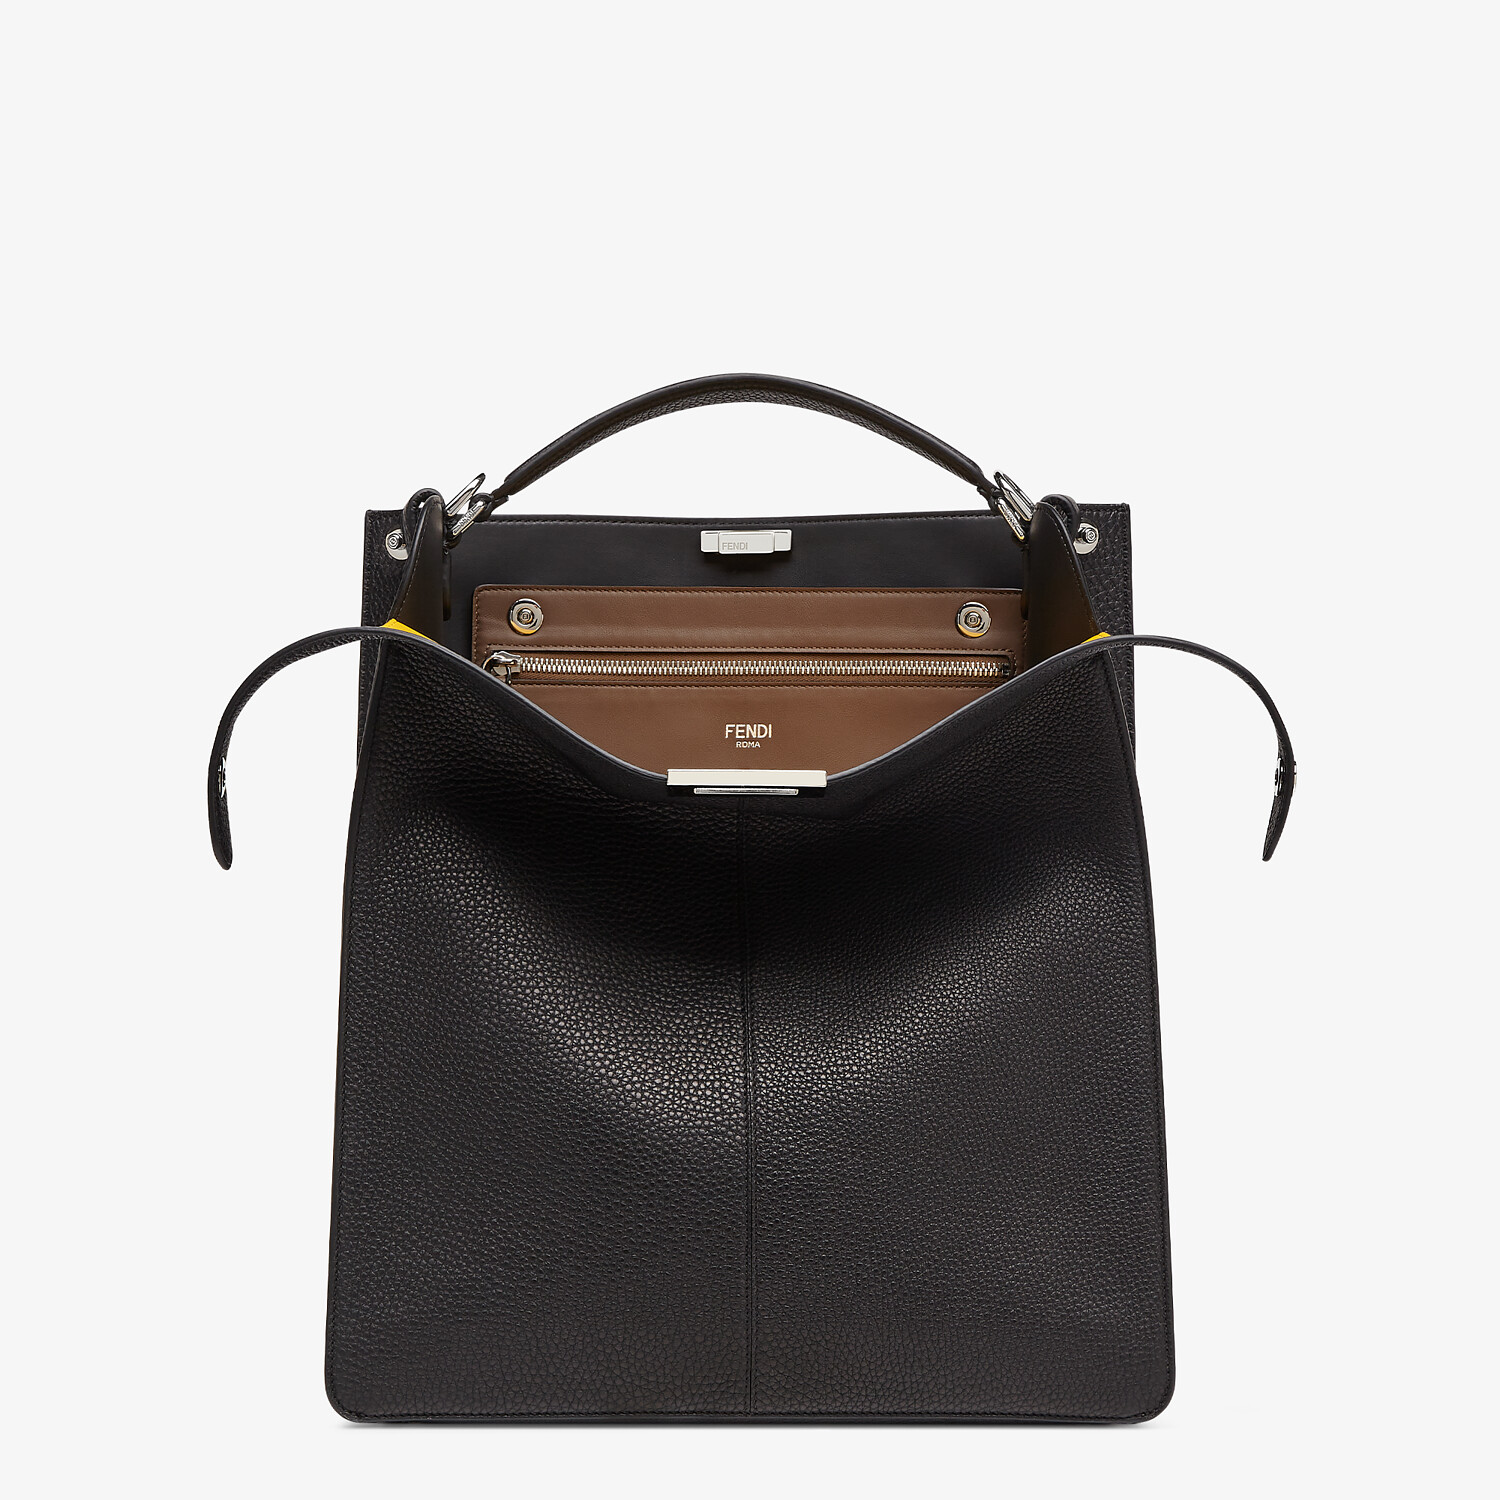 FENDI PEEKABOO ISEEU TOTE - Black leather bag - view 1 detail